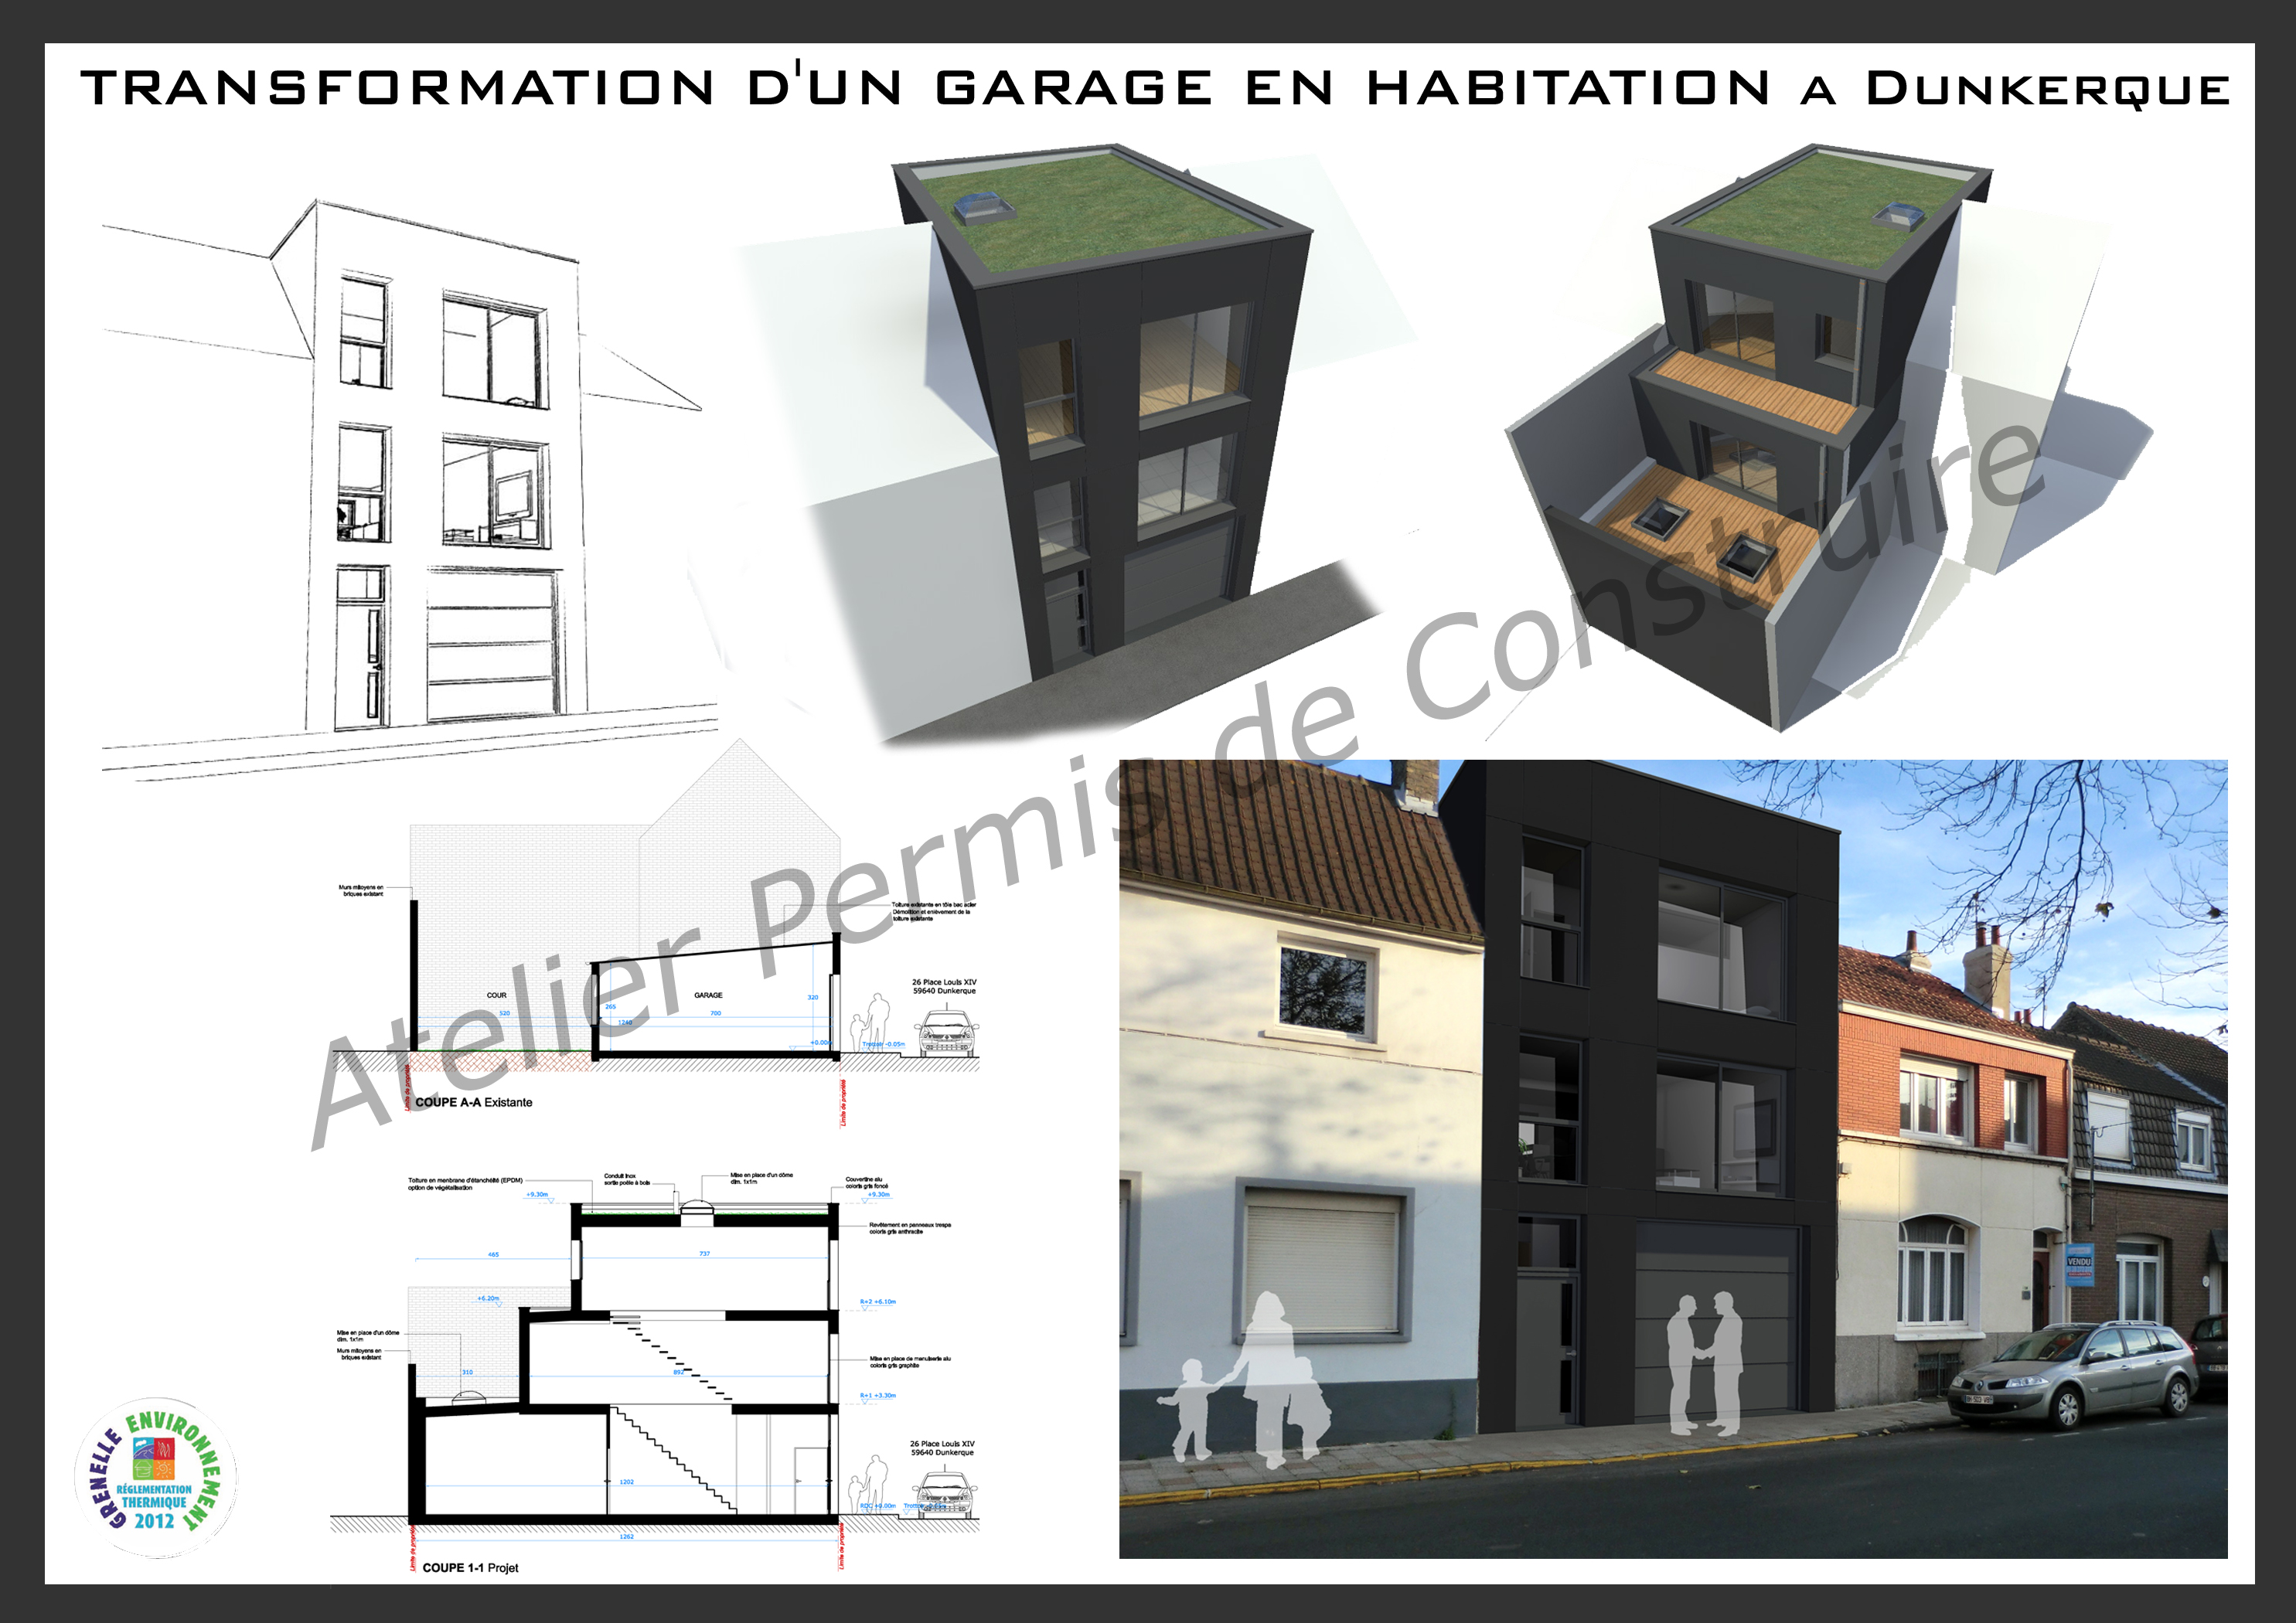 transformation d 39 un garage en habitation dunkerque. Black Bedroom Furniture Sets. Home Design Ideas